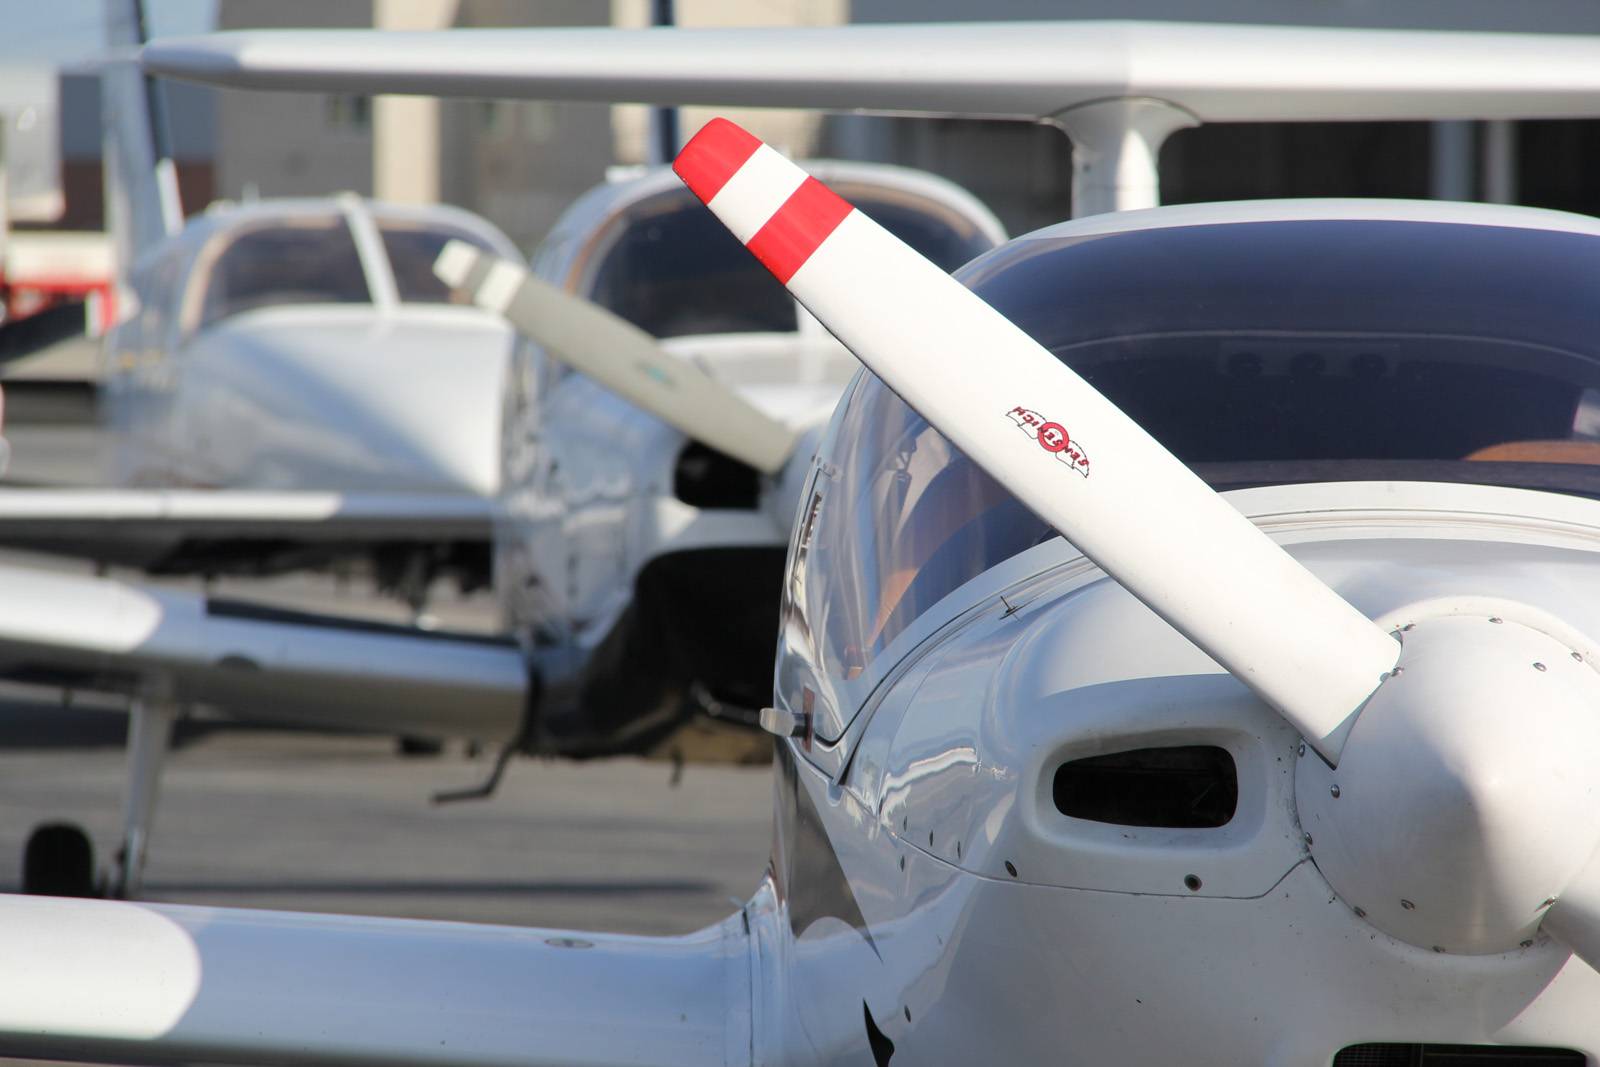 Learn to fly at Van Nuys Airport in Los Angeles